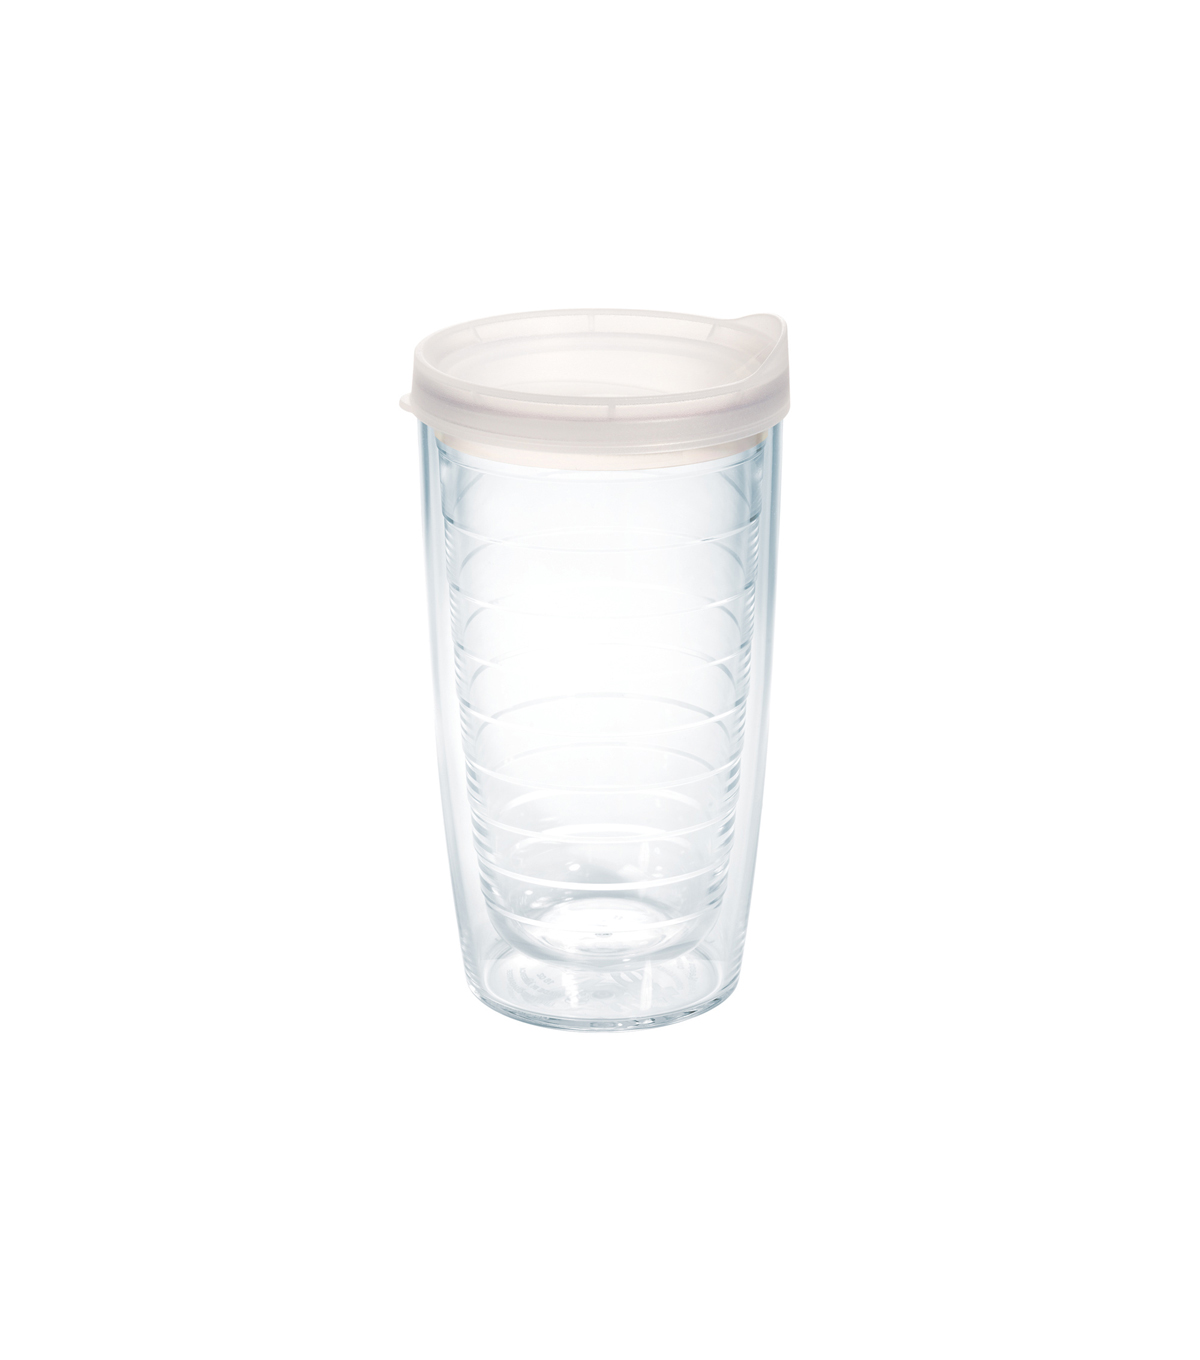 Tervis 16oz. Tumbler-Clear